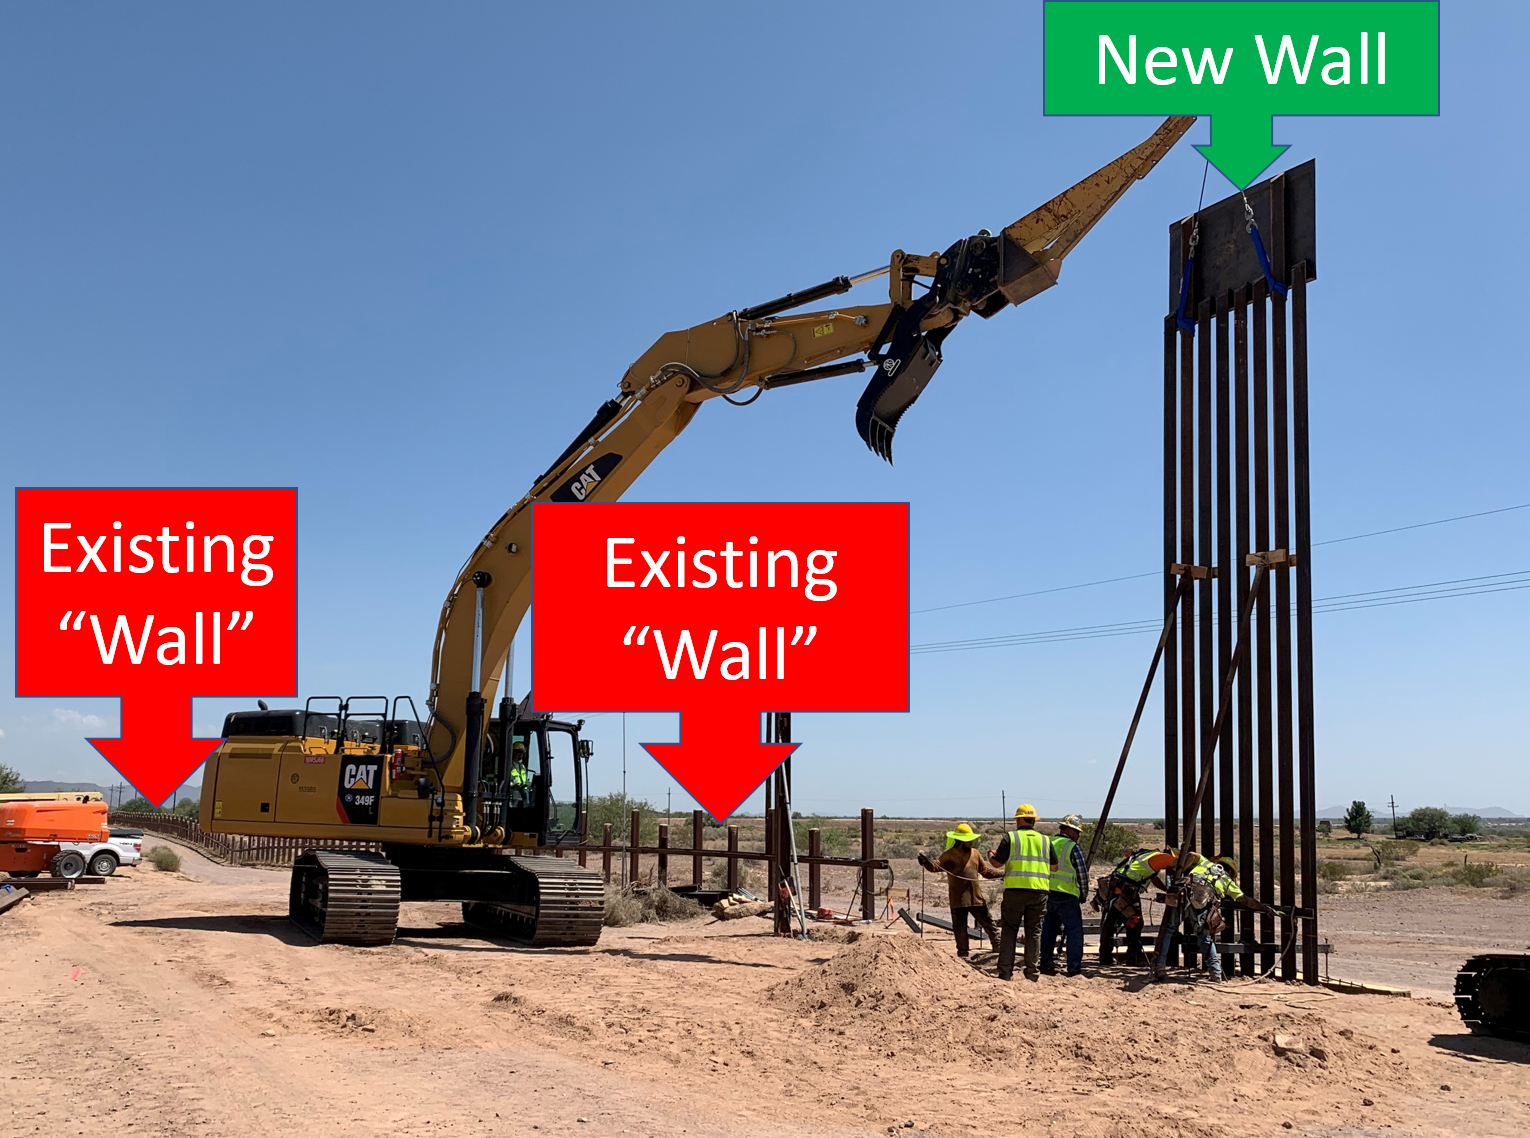 New Pedestrian Wall Replacing Existing Vehicle Wall -